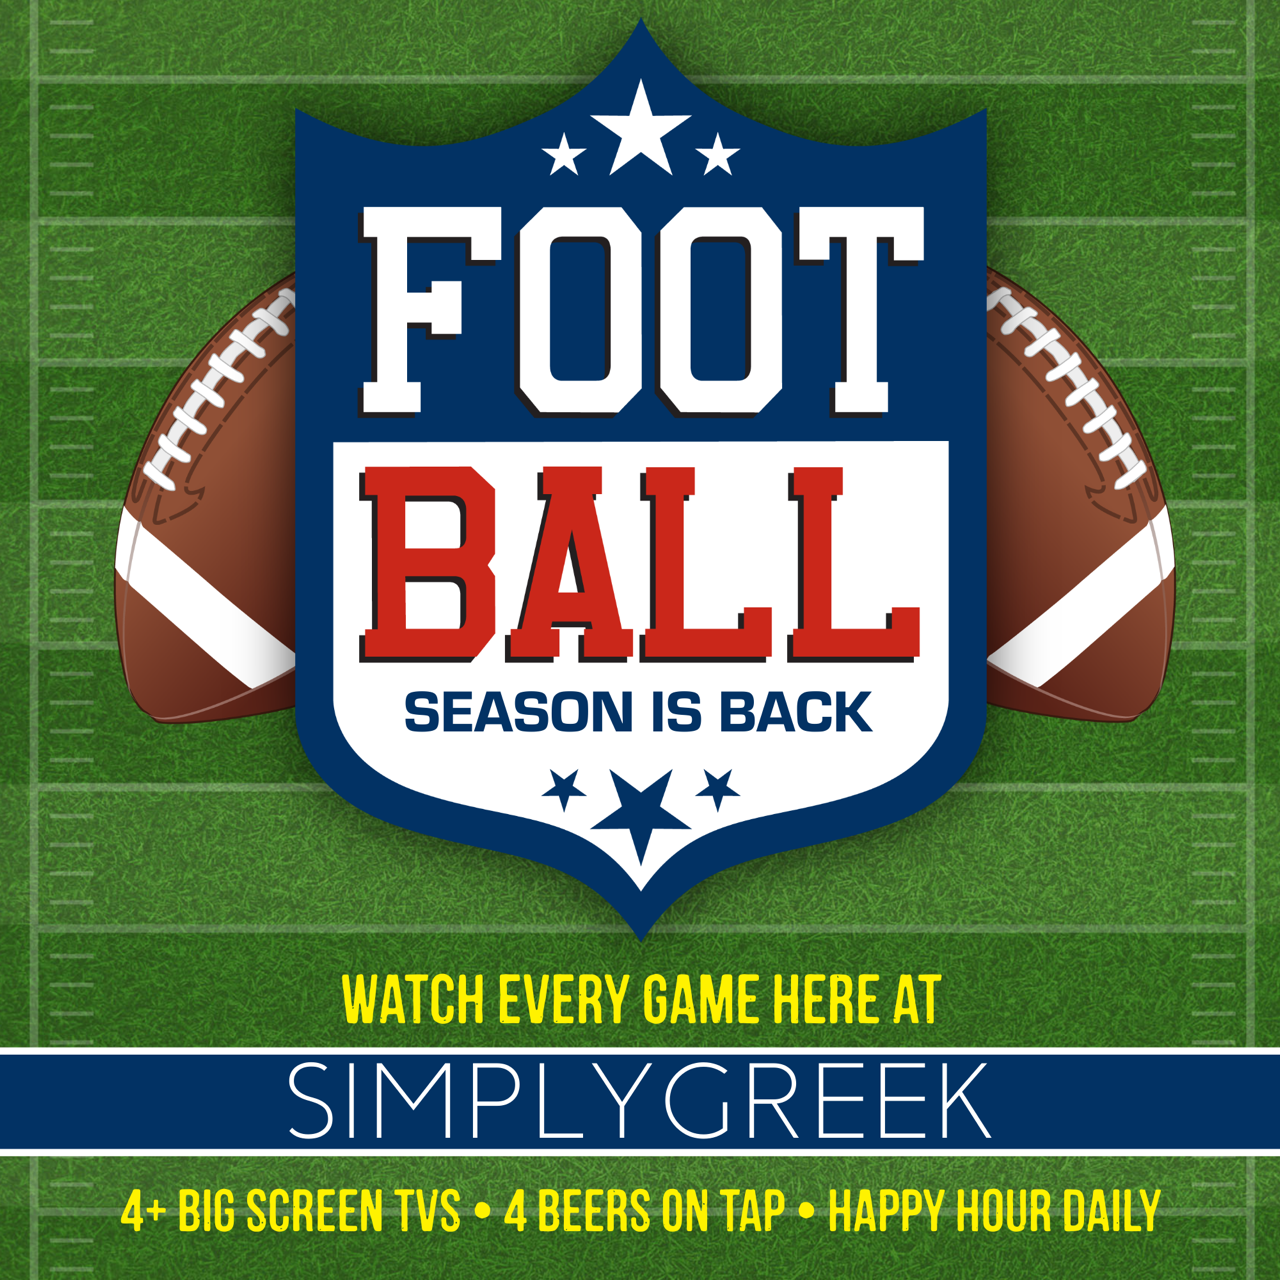 Football Season is BACK at SimplyGreek